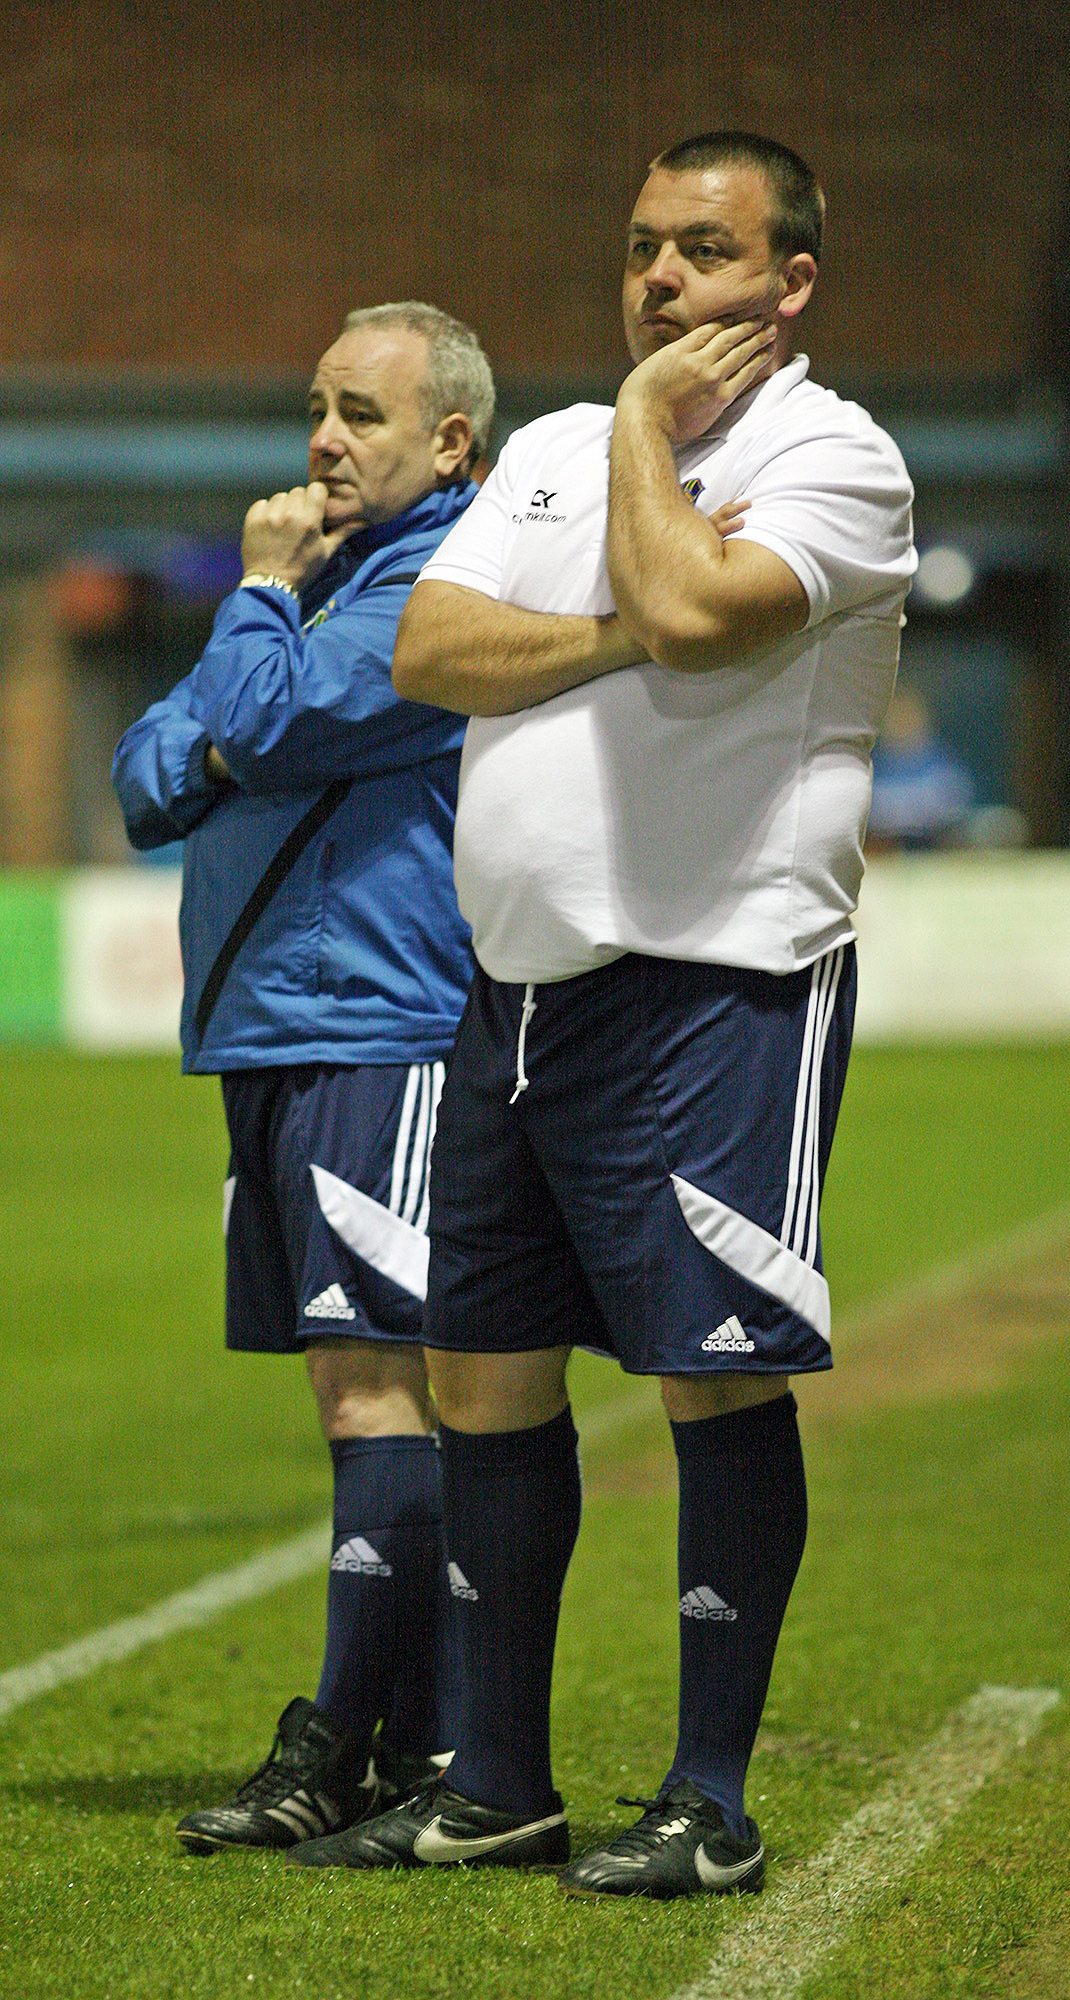 PHIL-LING GOOD: Daisy Hill manager Phil Roberts, right, with assistant manager Moray Boyd